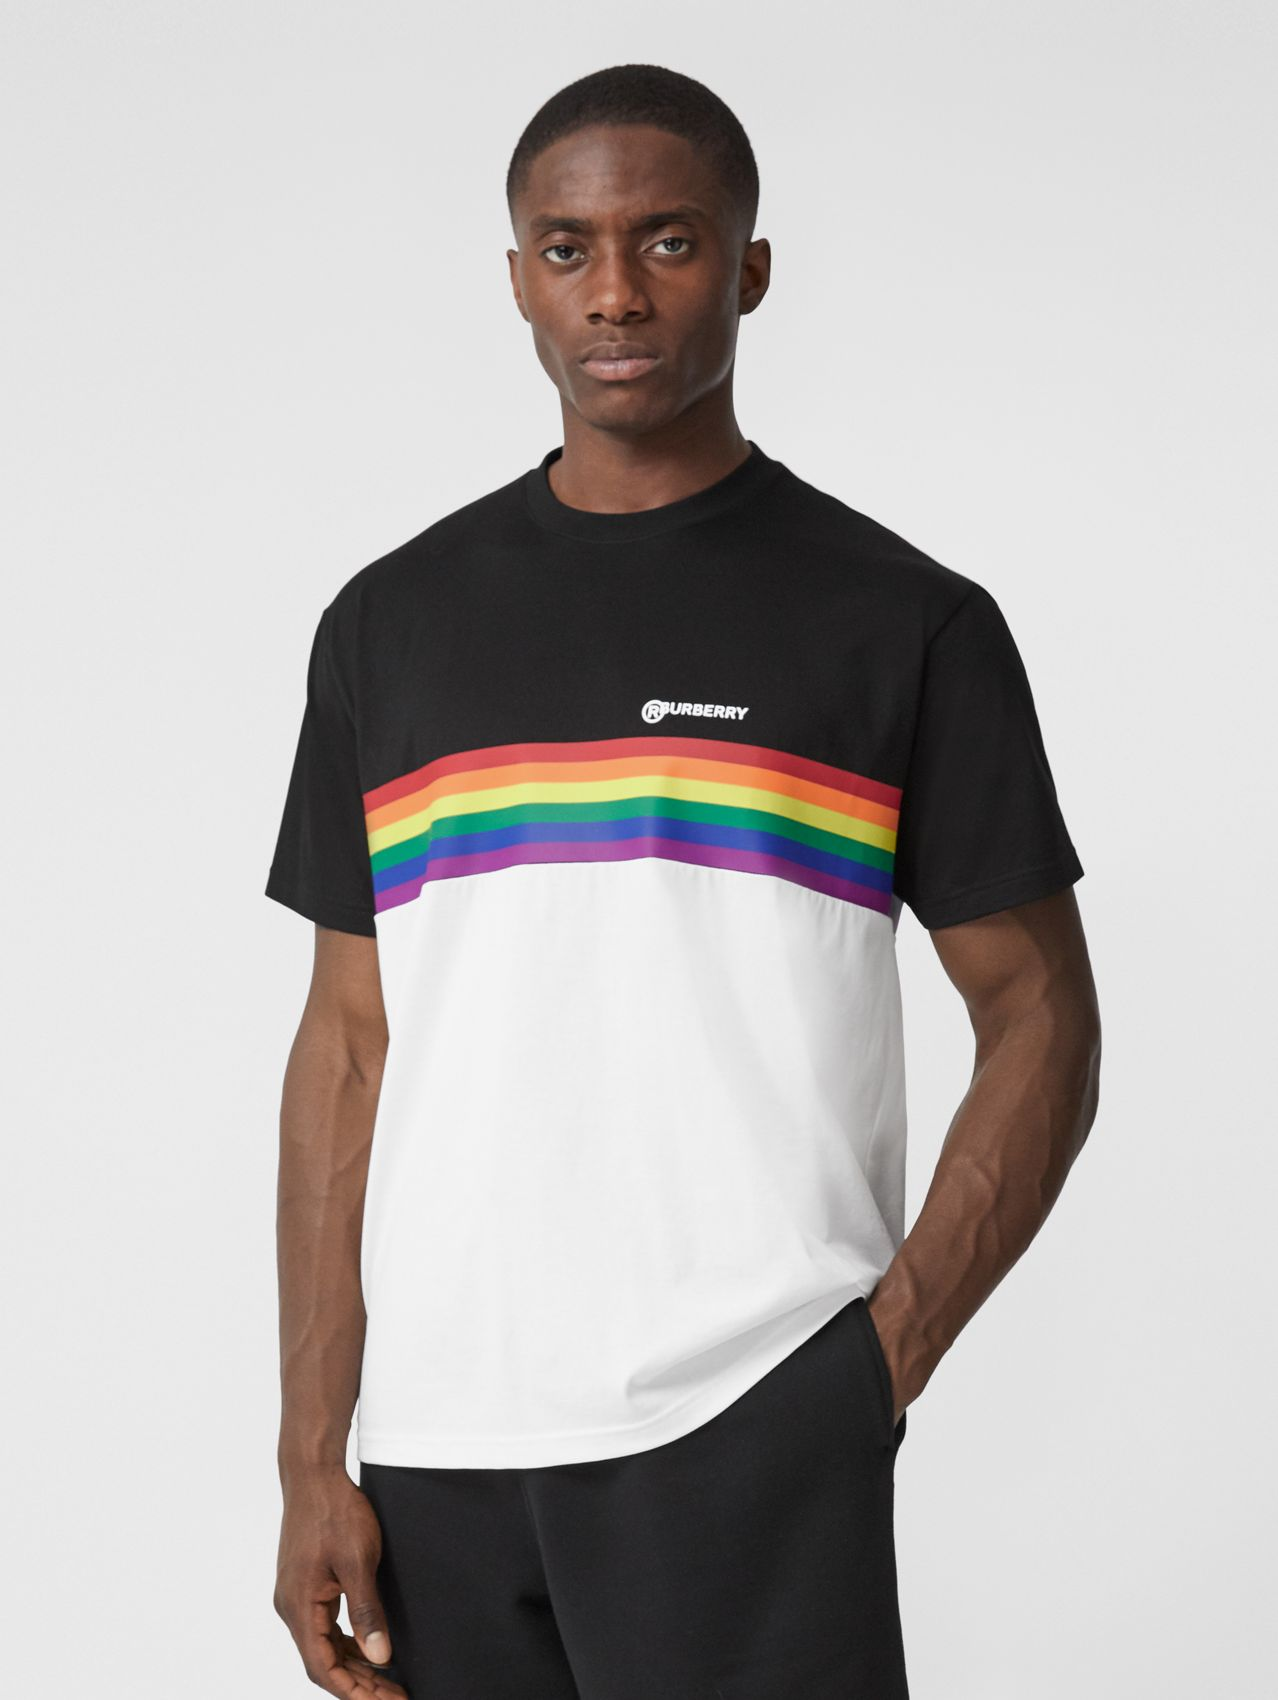 Rainbow Stripe Print Cotton T-shirt – Unisex (Black)